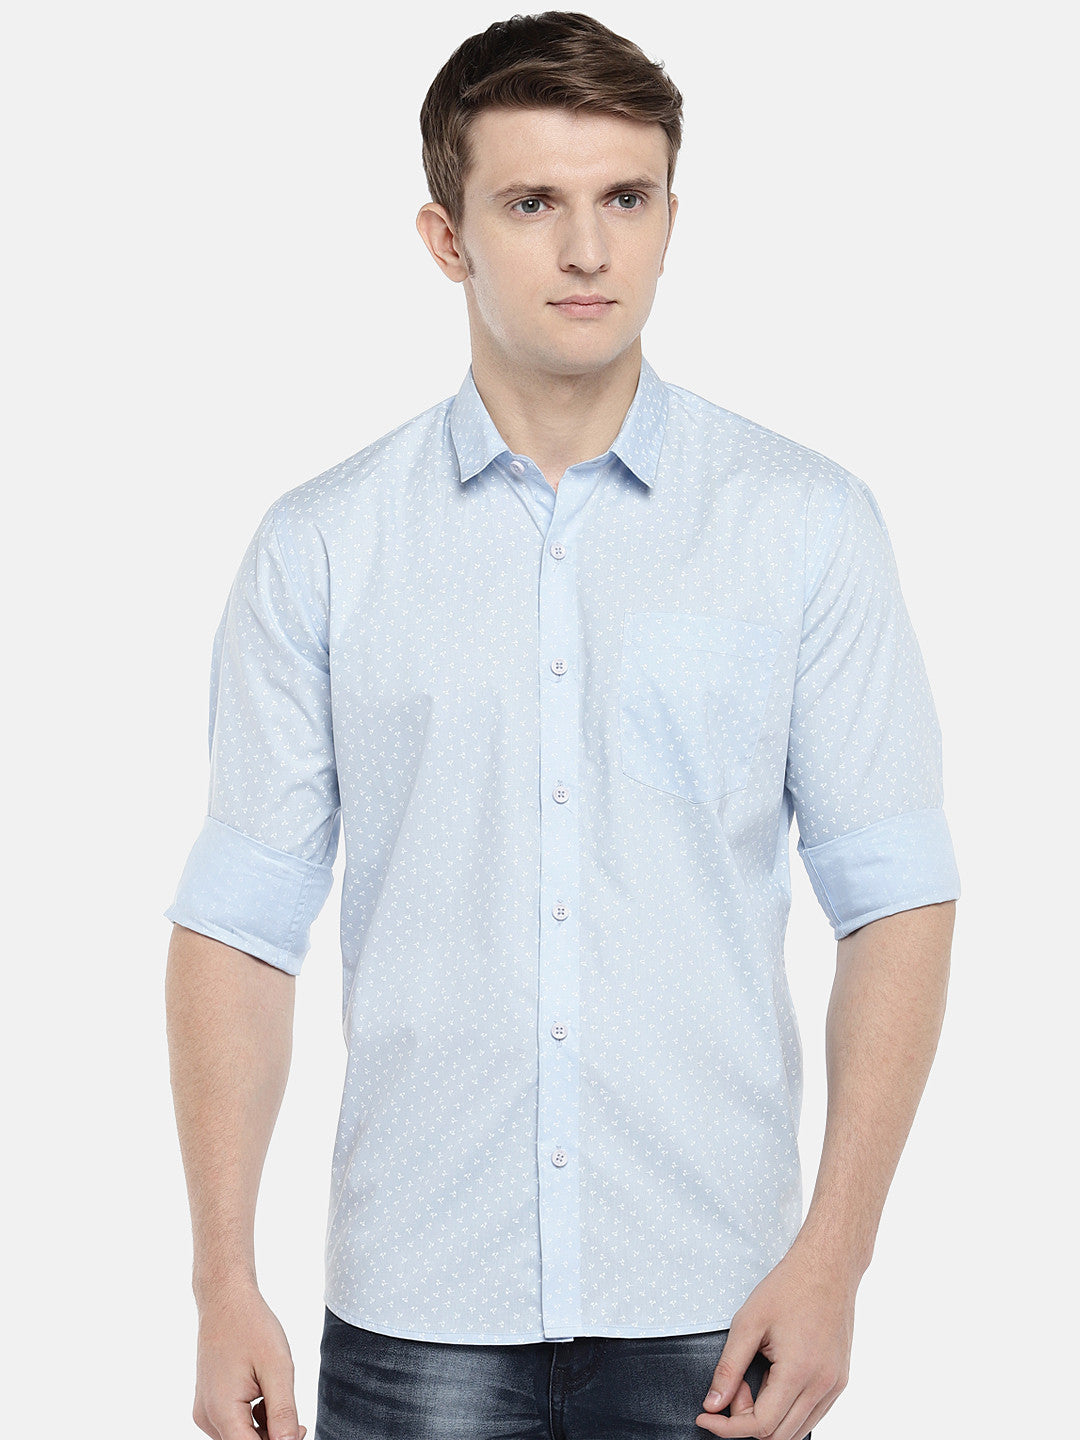 Blue Regular Fit Printed Casual Shirt-1